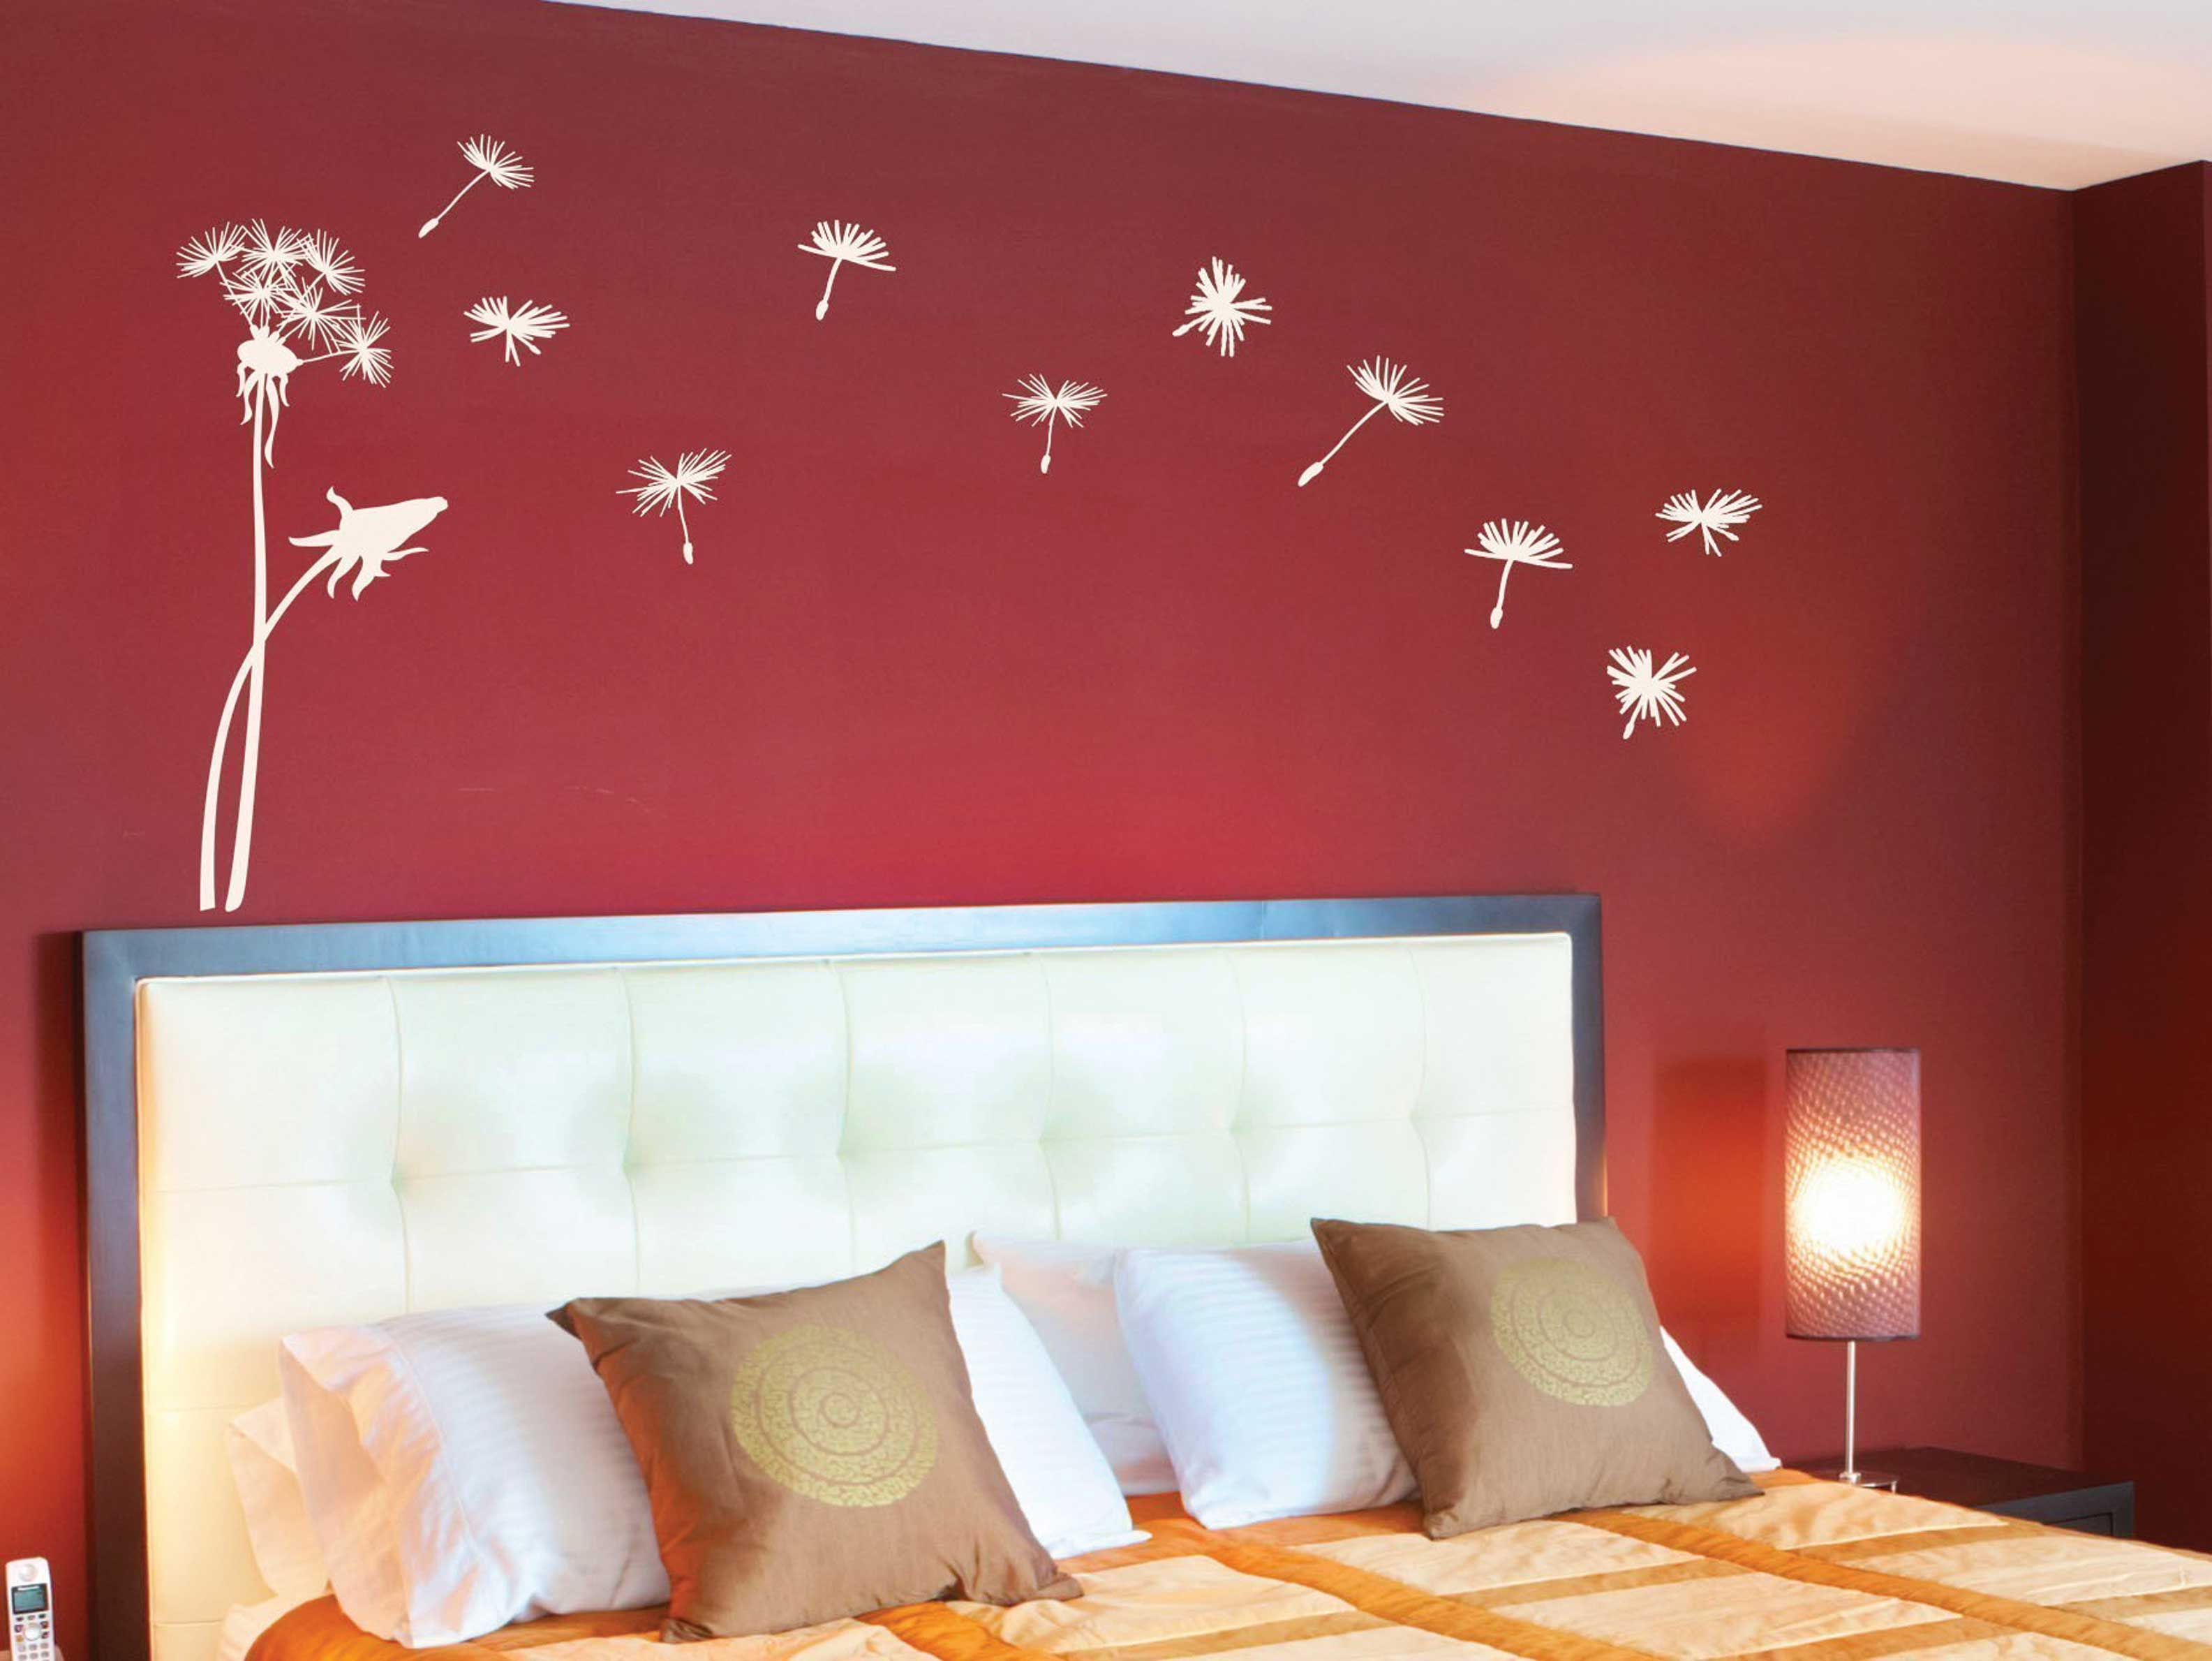 Interior wall painting colour combinations bed room - Interior Wall Painting Colour Combinations Bed Room 16